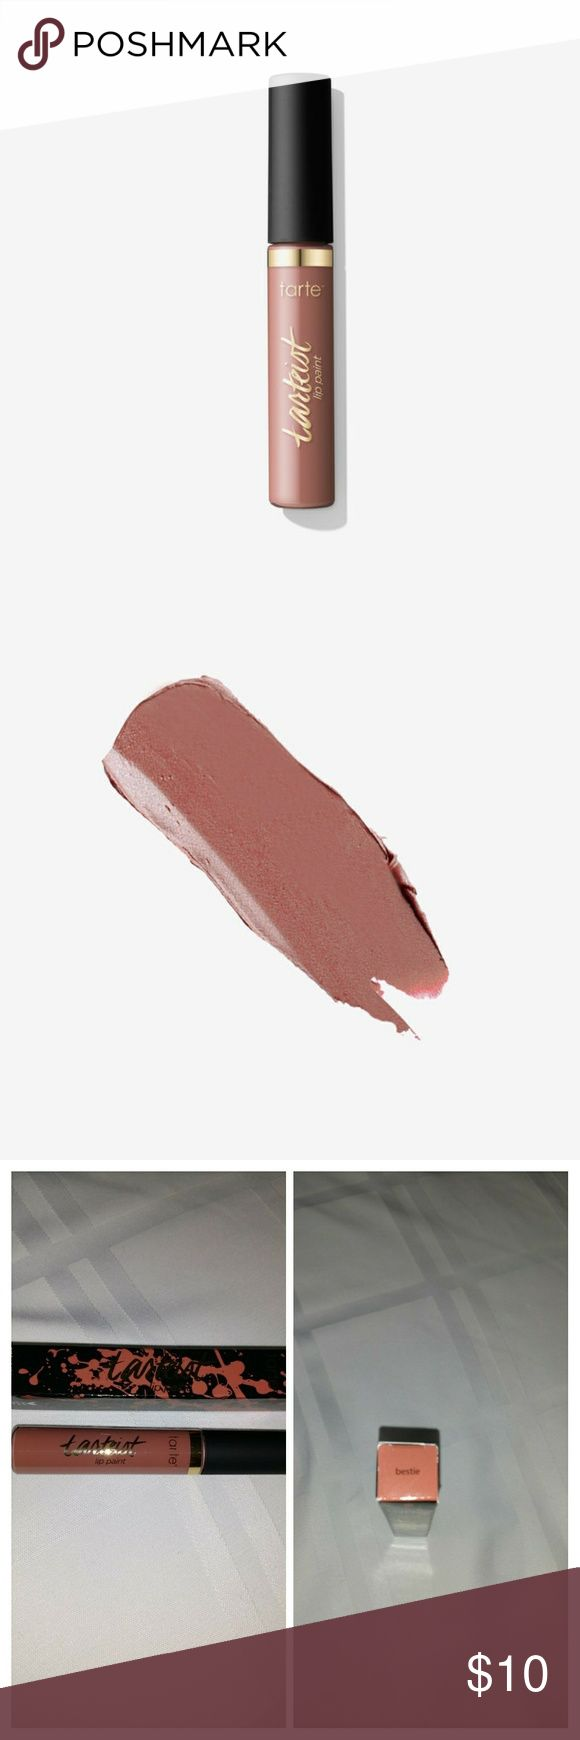 The 25 best what does pigment mean ideas on pinterest tarte tarteist quick dry matte lip paint in bestie buycottarizona